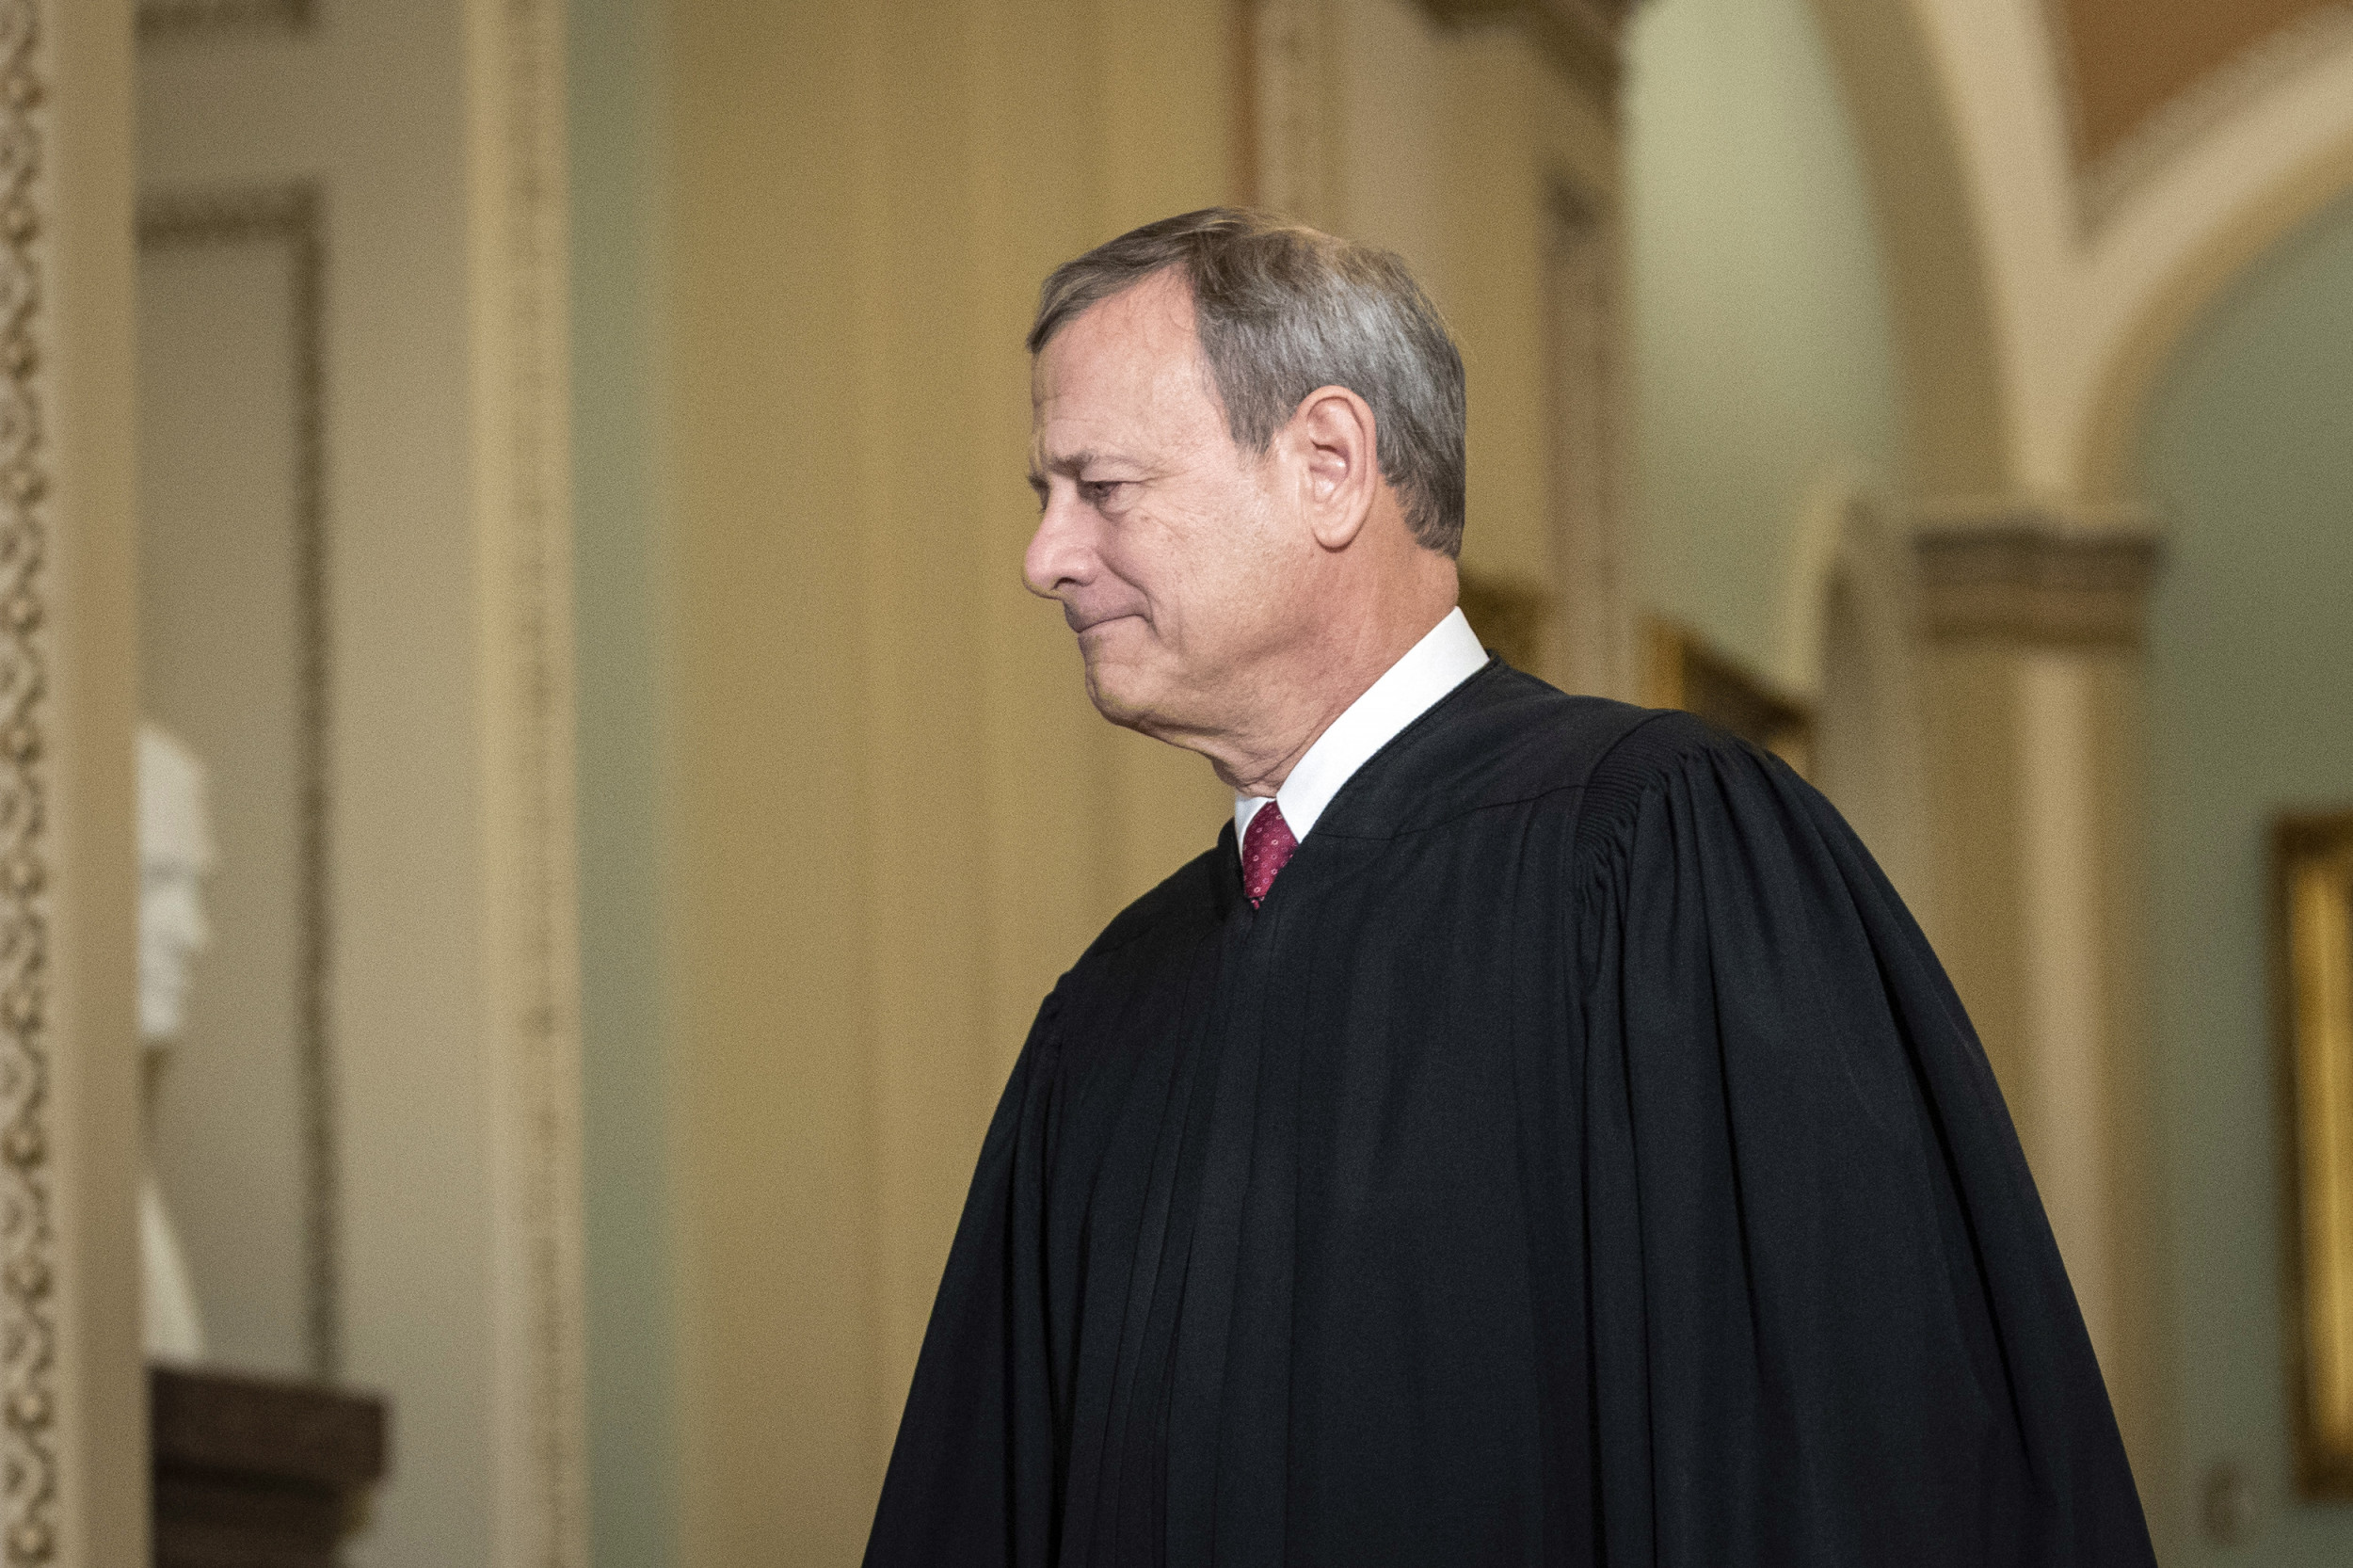 The Supreme Court's culture war whiplash is all in your head | Opinion